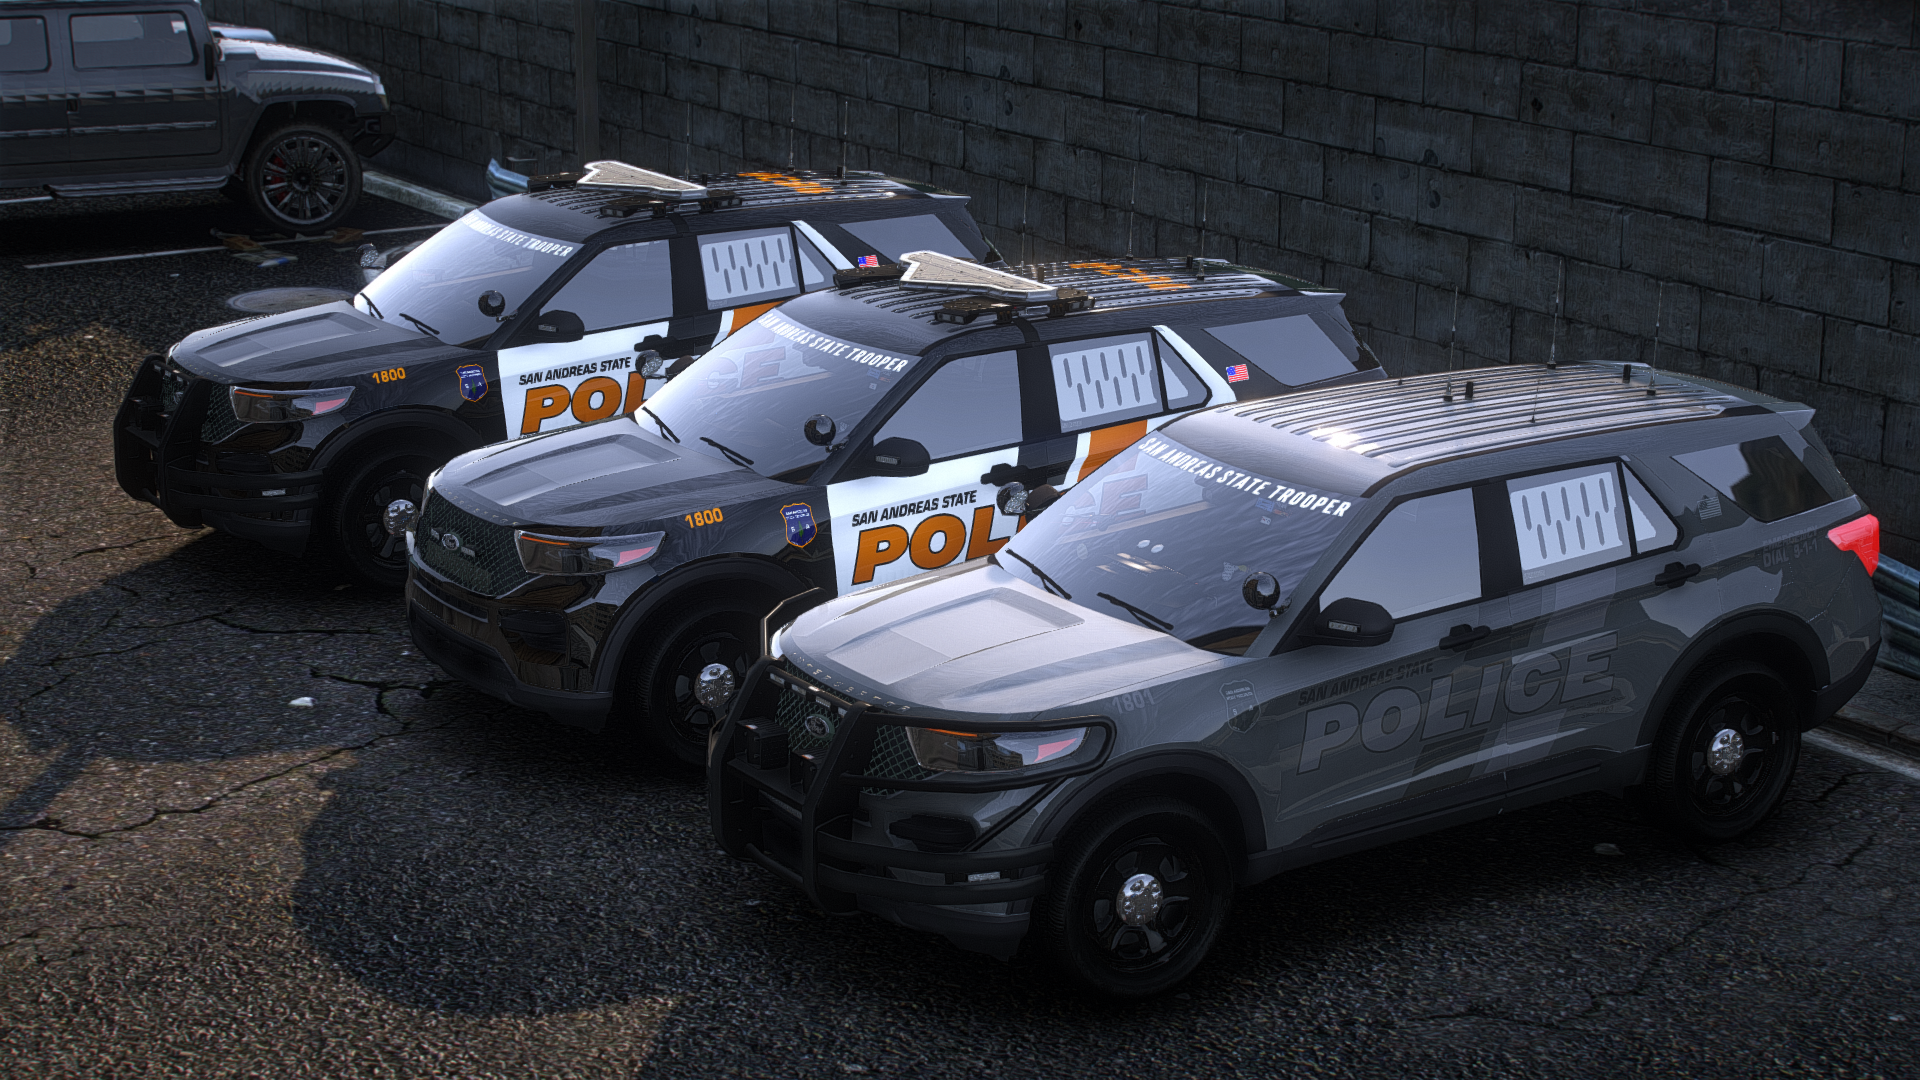 New 2020 FPIU's just rolled in